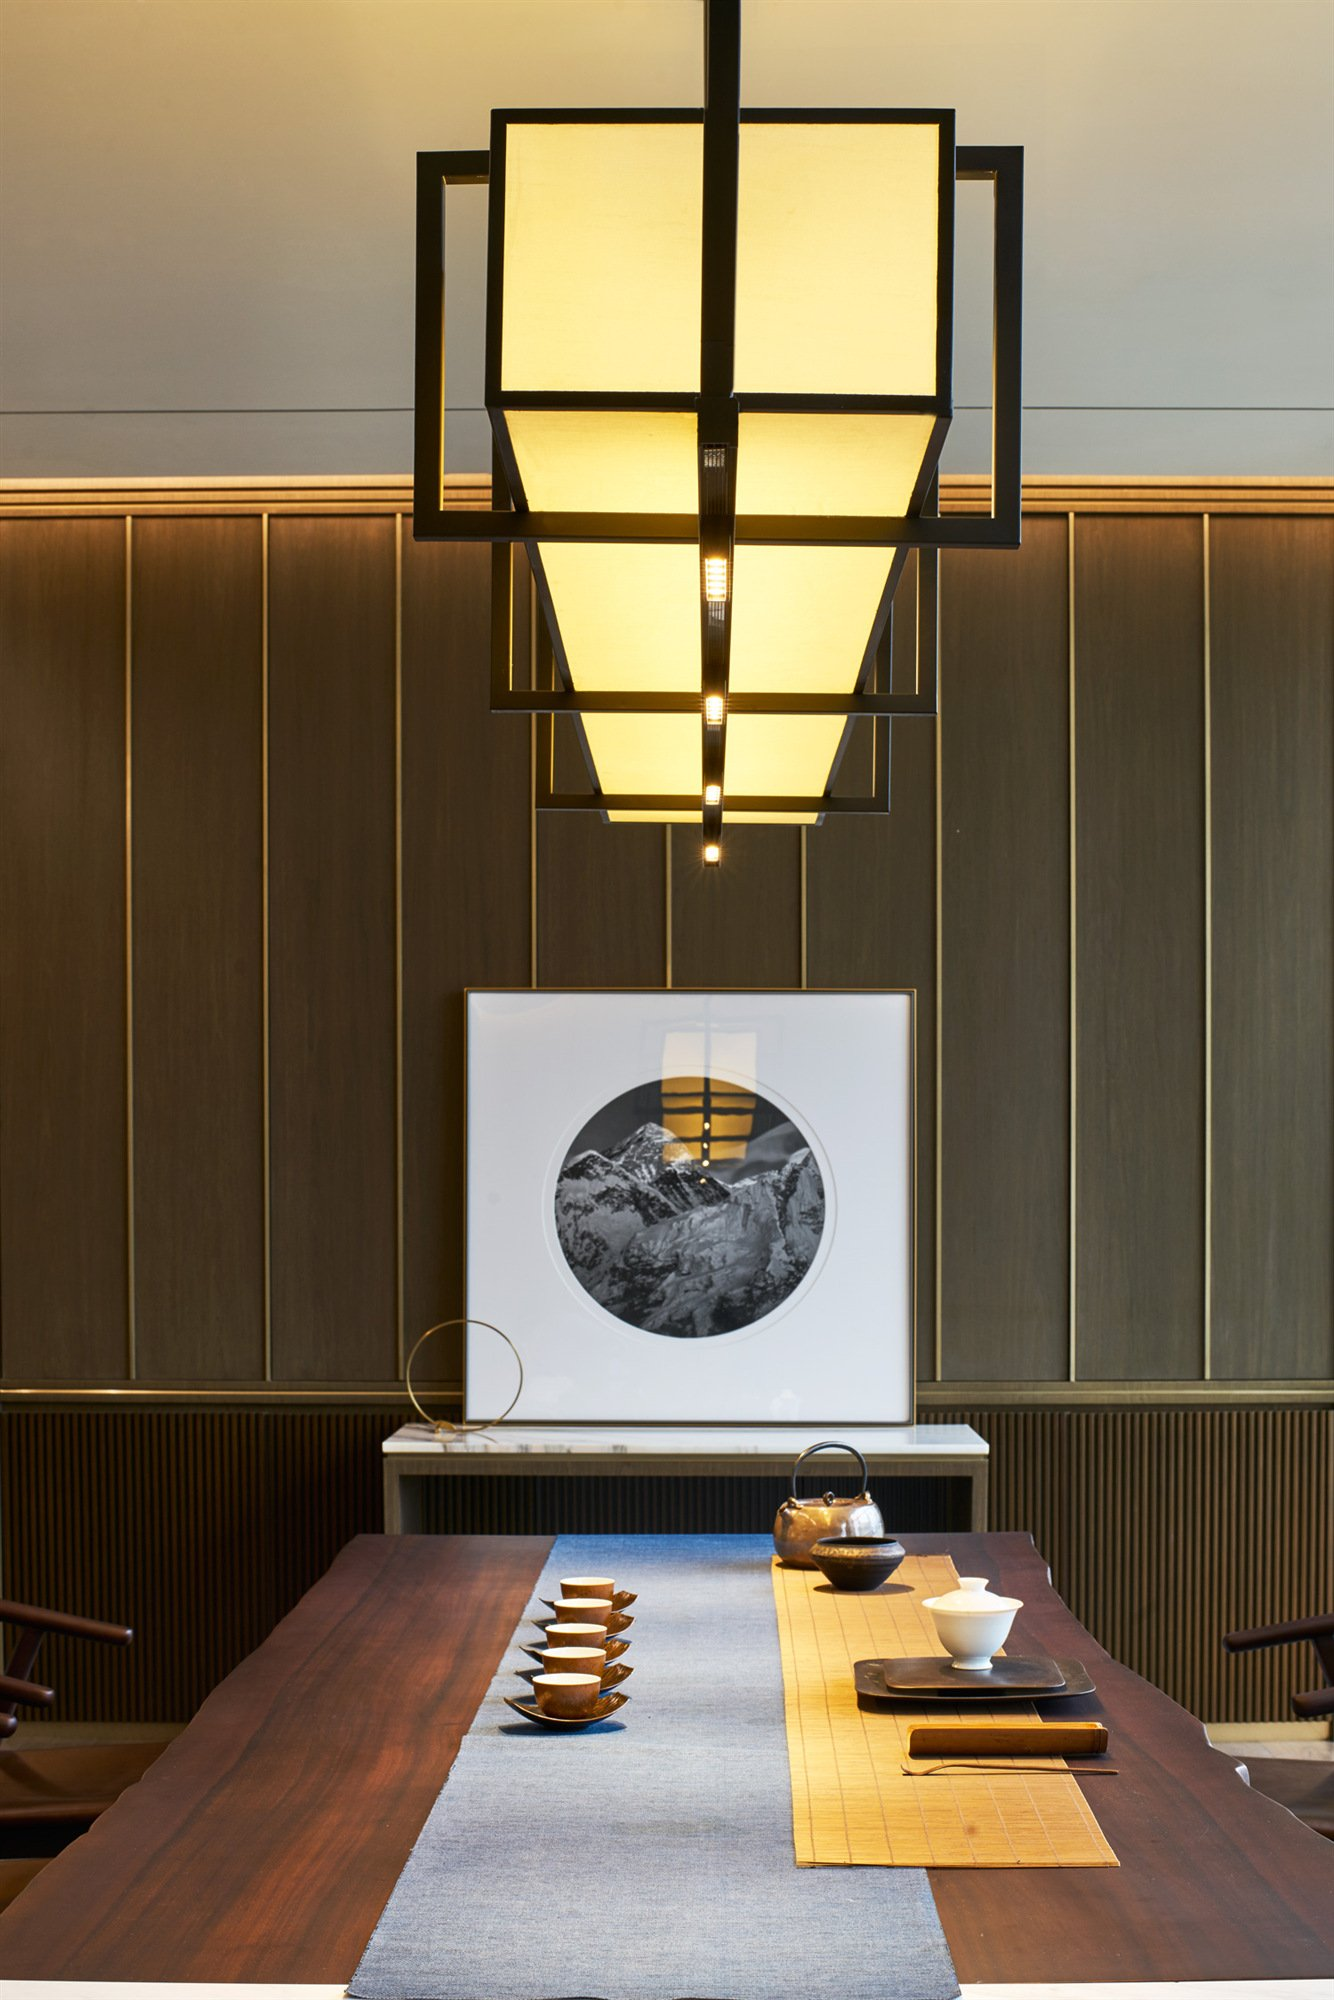 The Tea room presents a peaceful atmosphere BNJN design